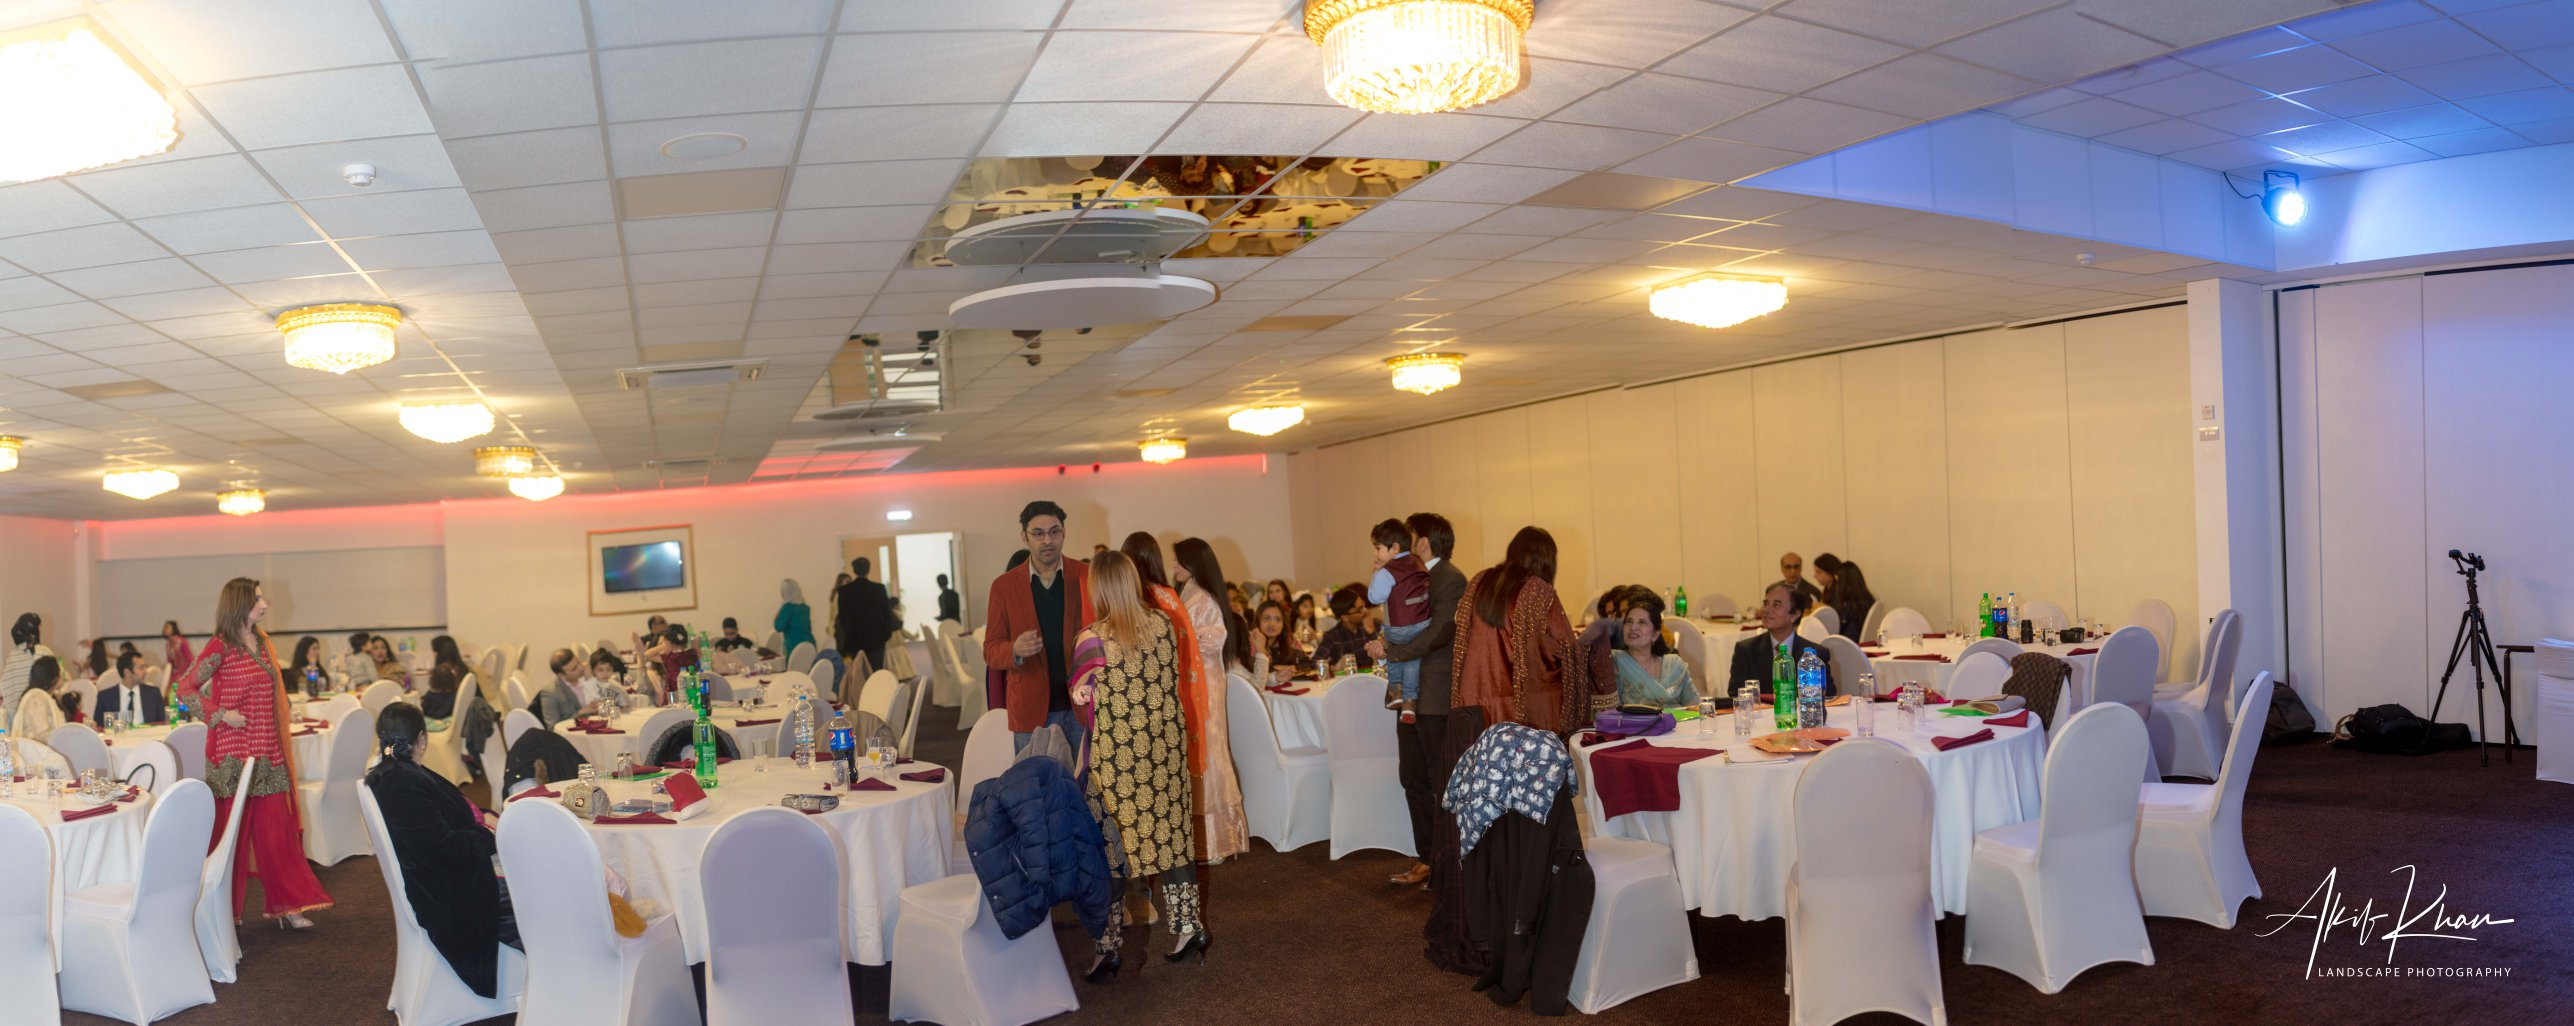 Fifth Function 10th September 2017